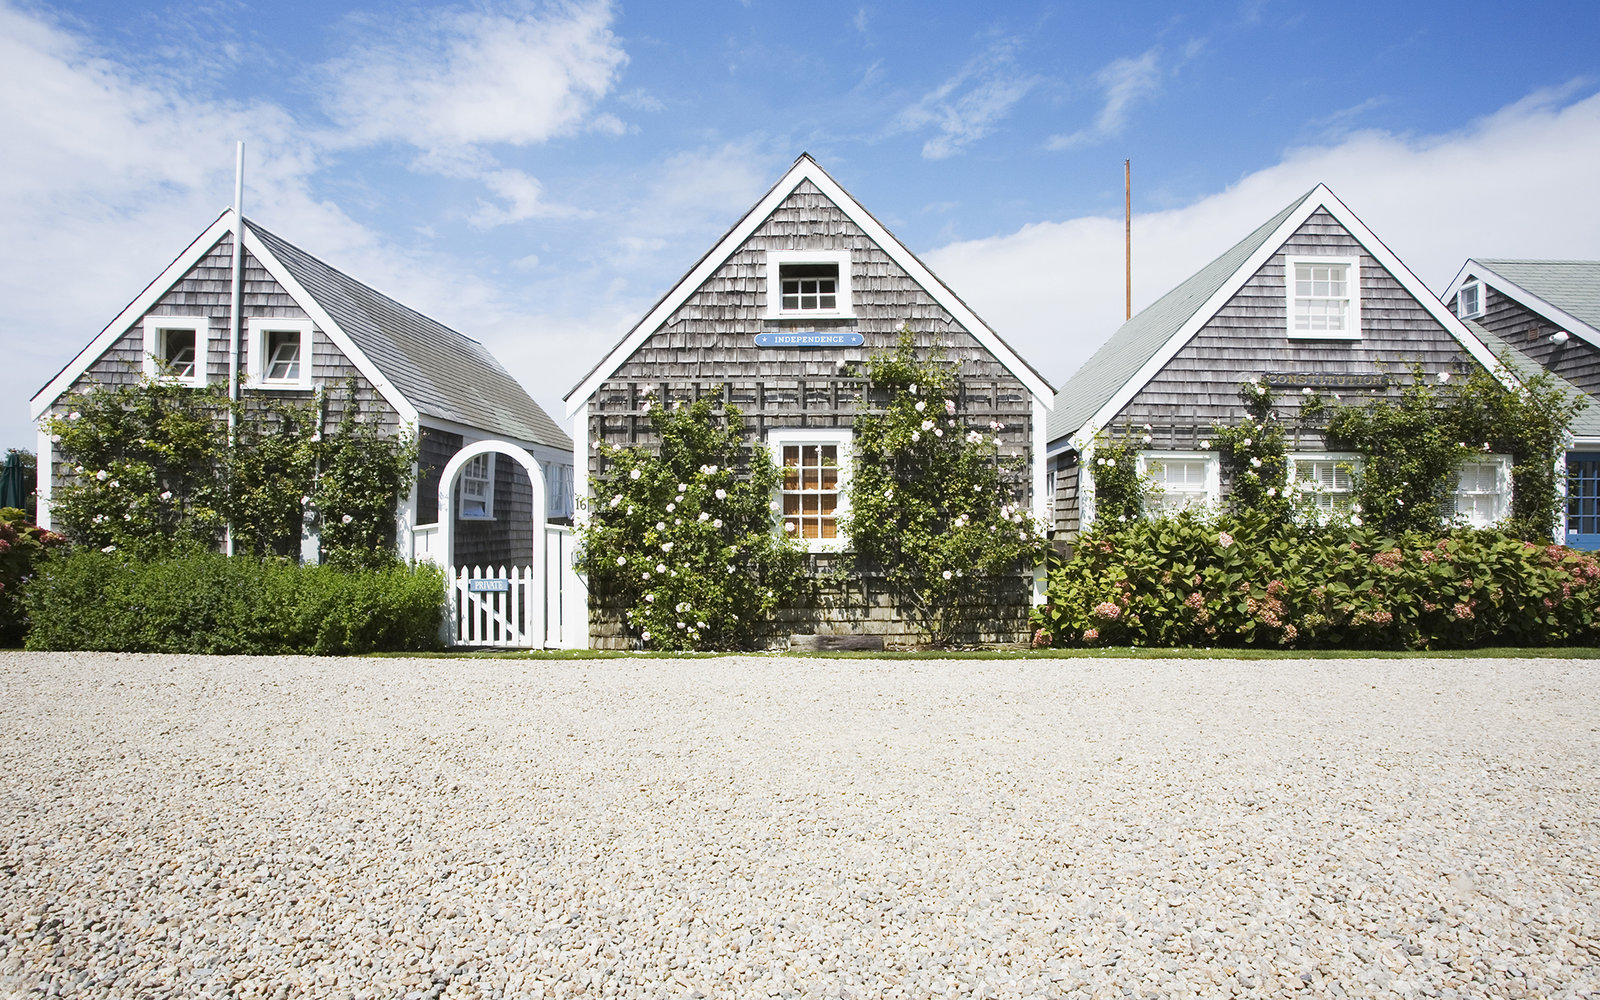 Travel guide nantucket vacation trip ideas travel for Small country hotels